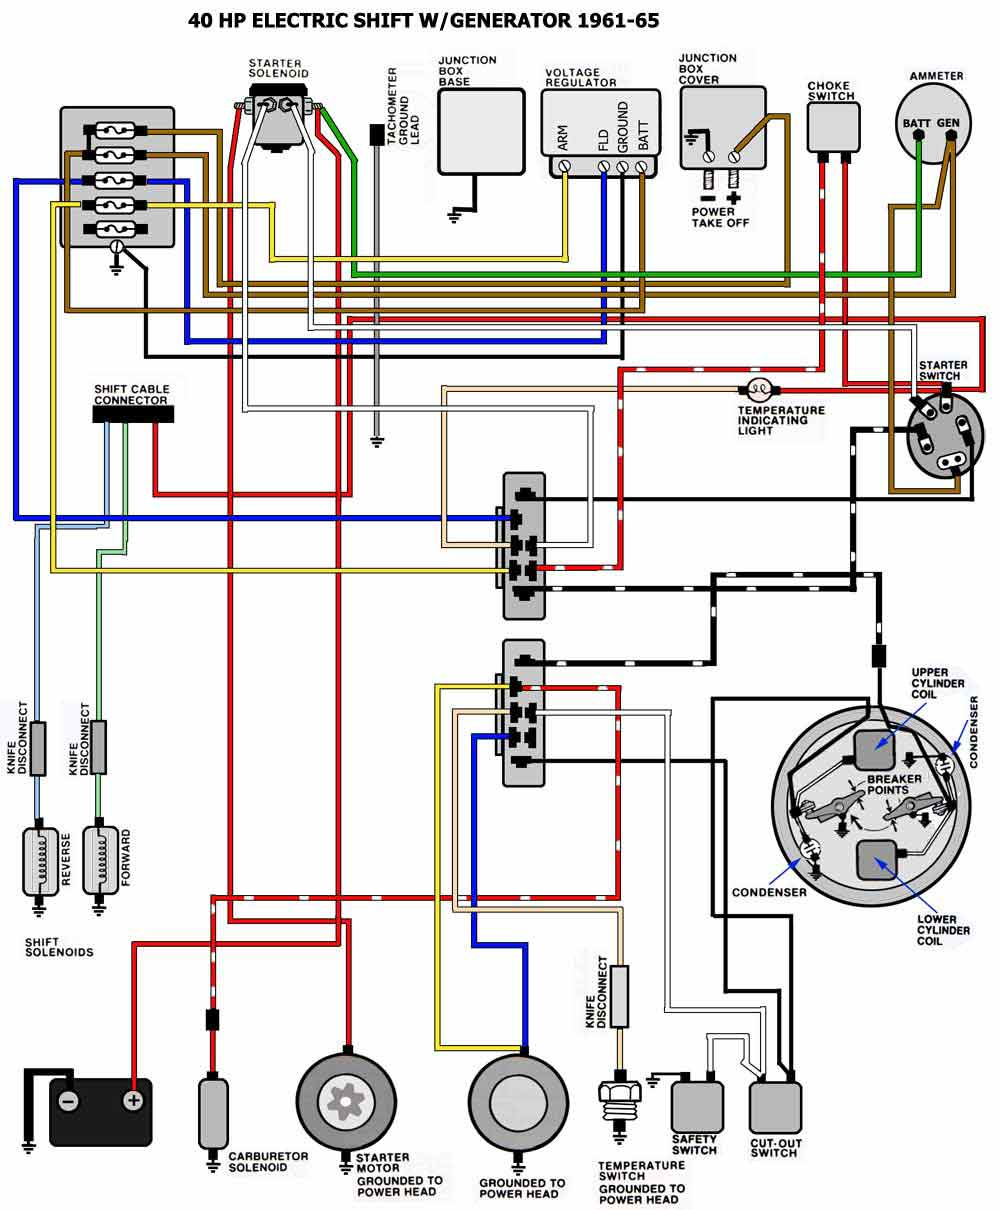 63086 Harbor Freight Generator Wiring Diagram additionally Honda Small Engine Carburetor Linkage Diagram besides Outdoors also Briggs And Stratton Engine Forum also Help Modifying My Wiring Diagram 7209825. on predator generator wiring diagram